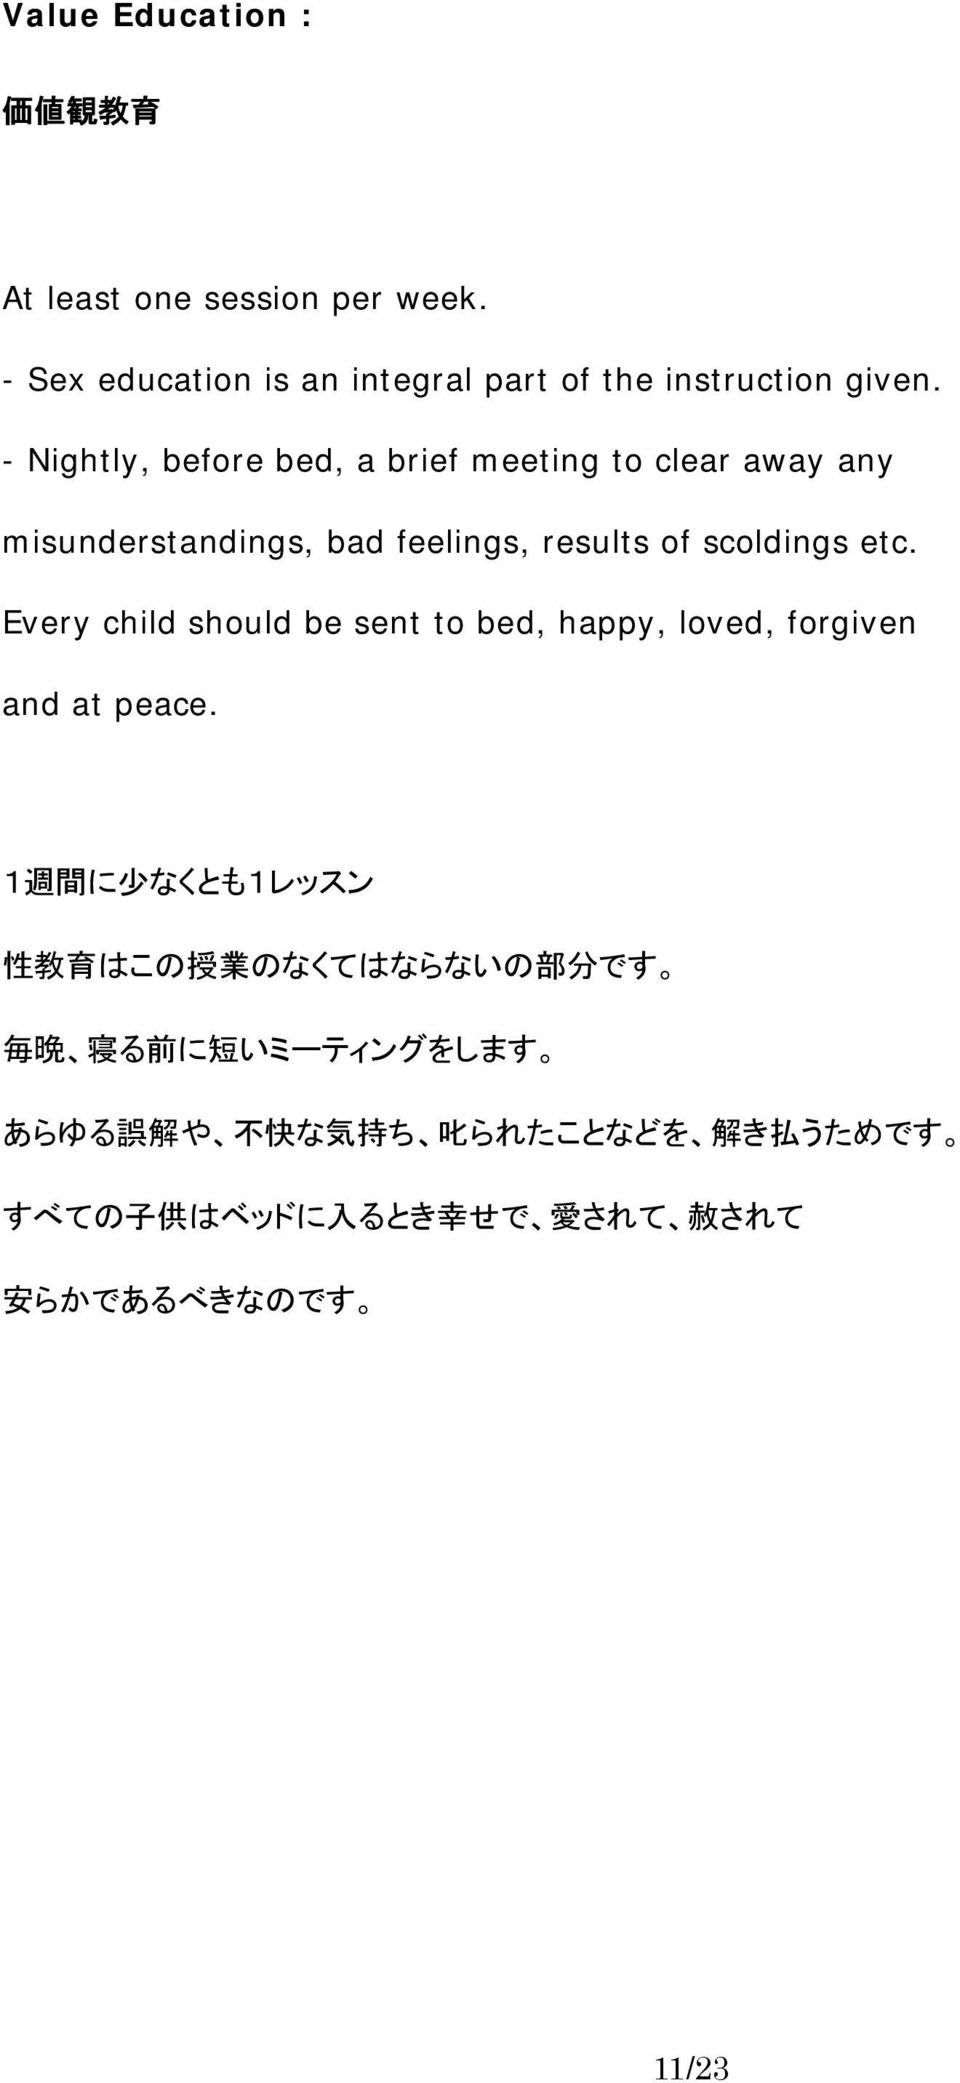 Every child should be sent to bed, happy, loved, forgiven and at peace.